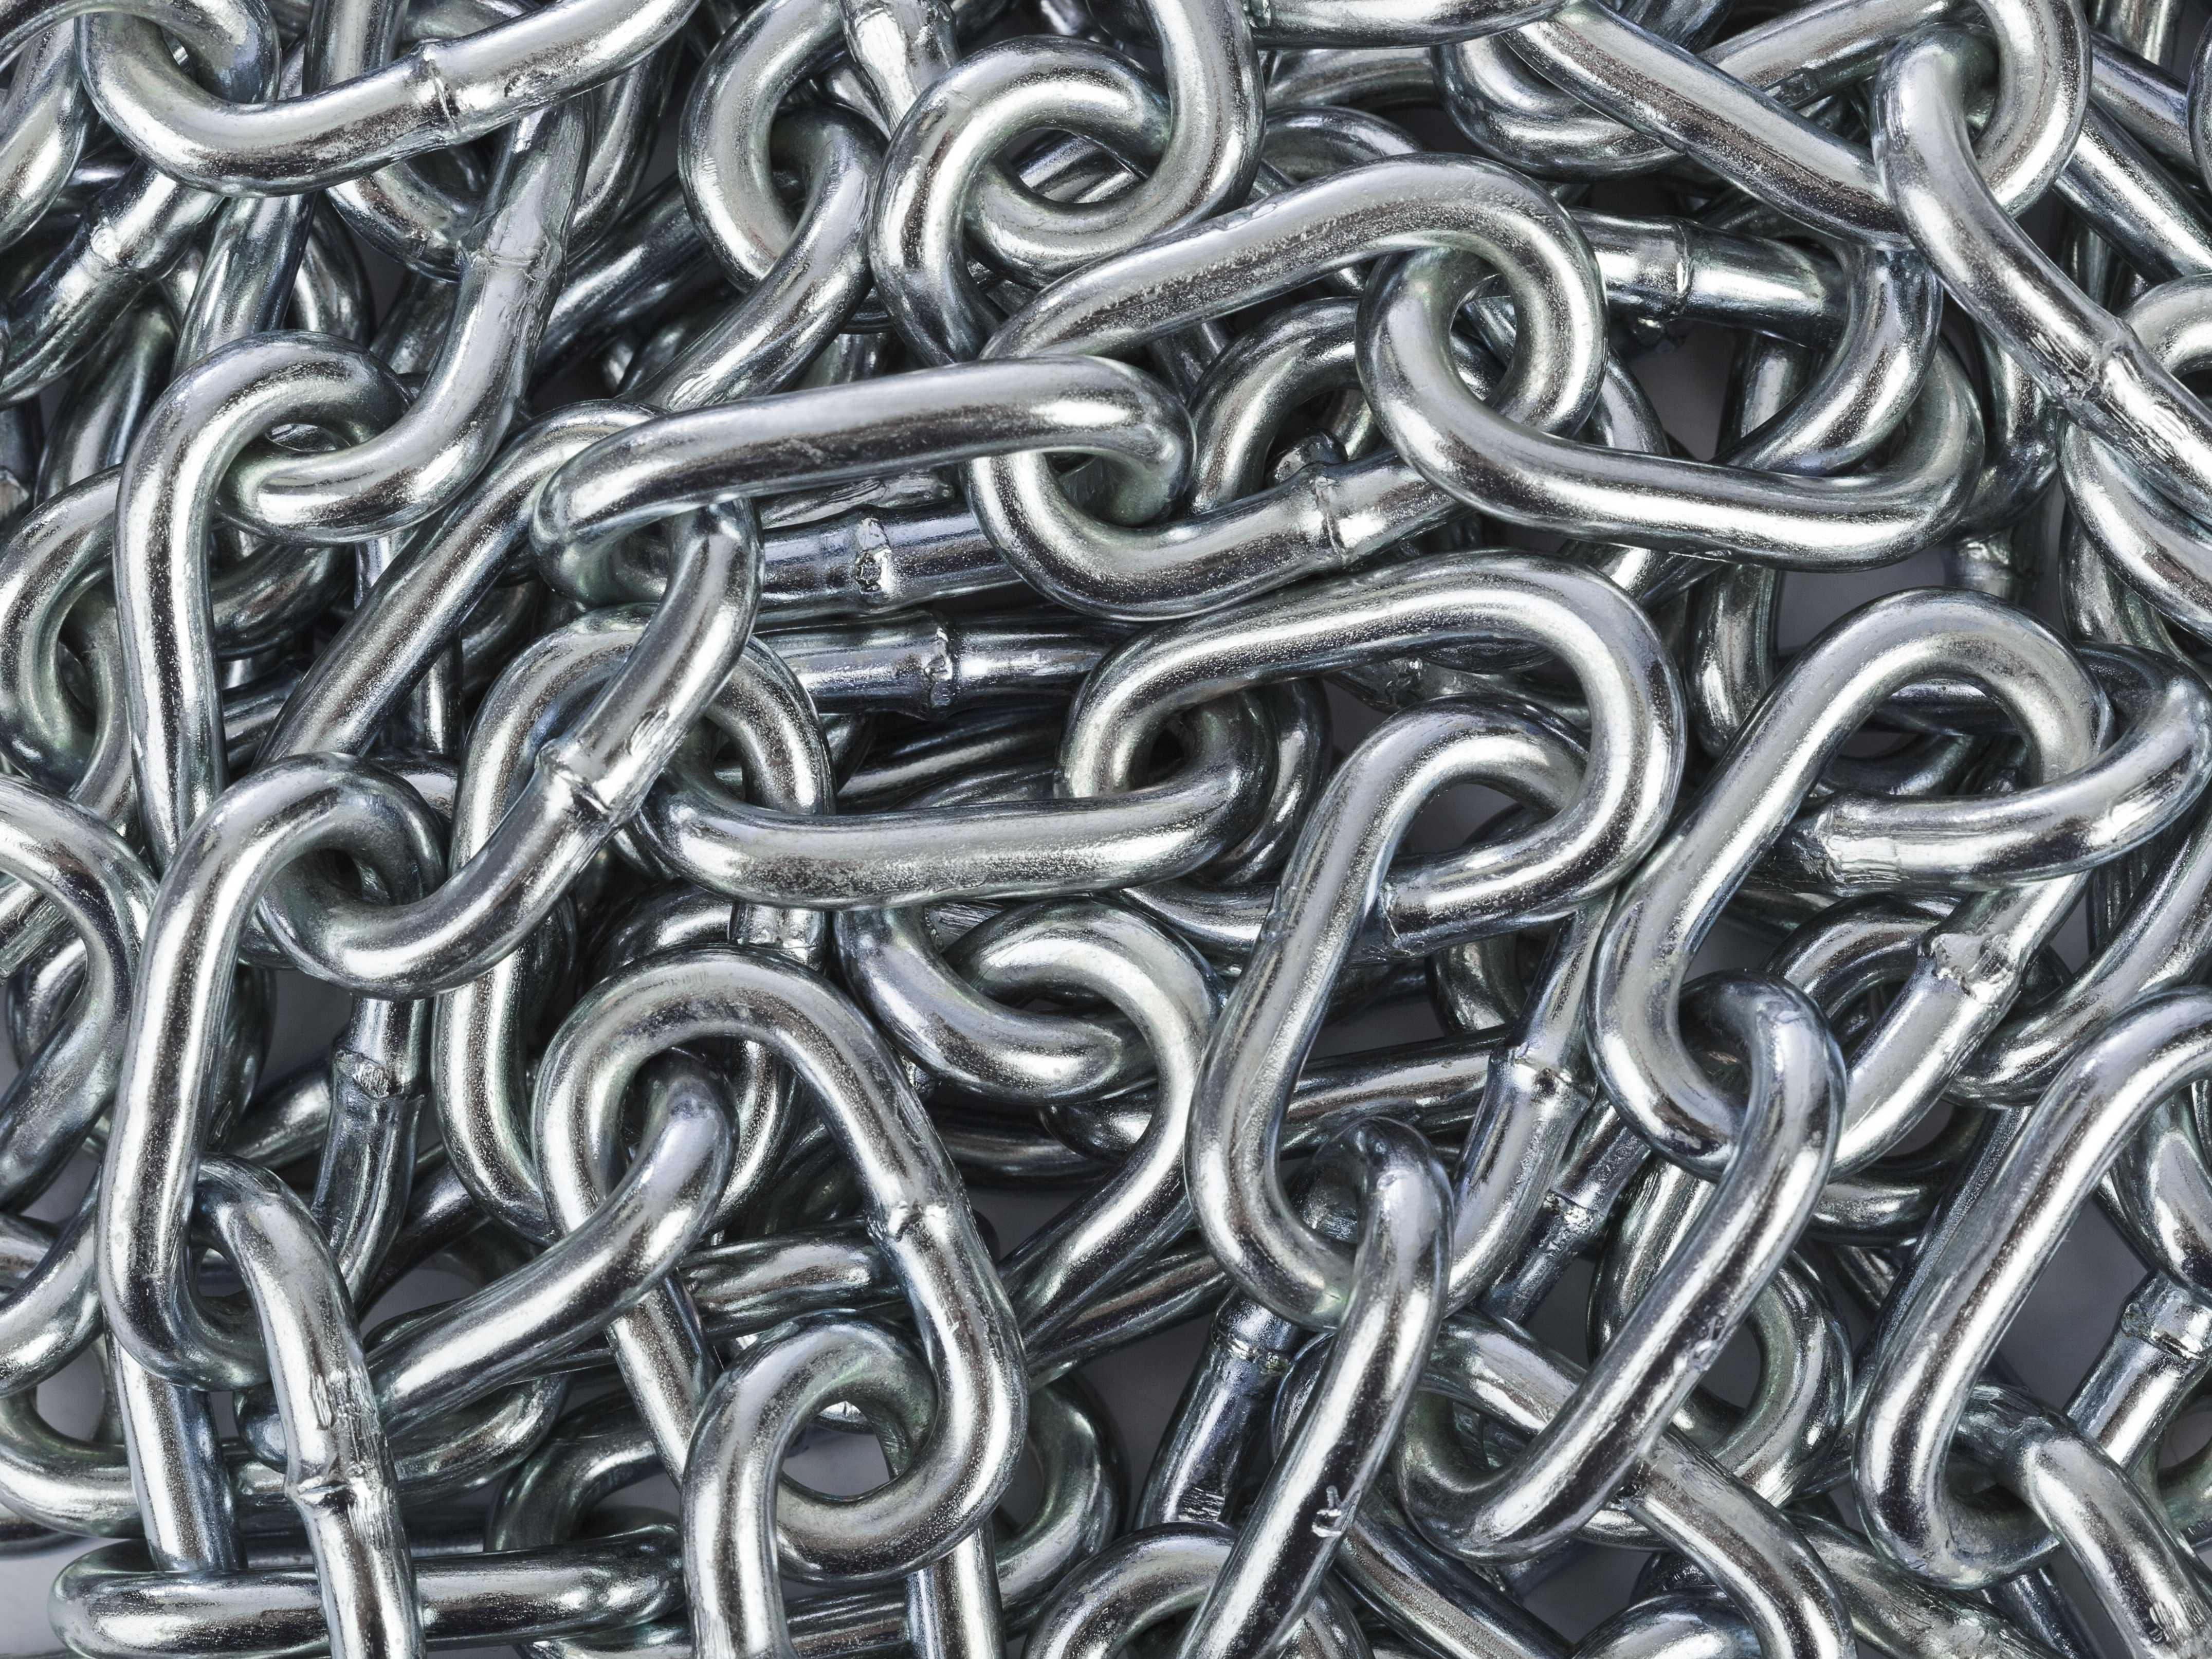 How metal chains are made.